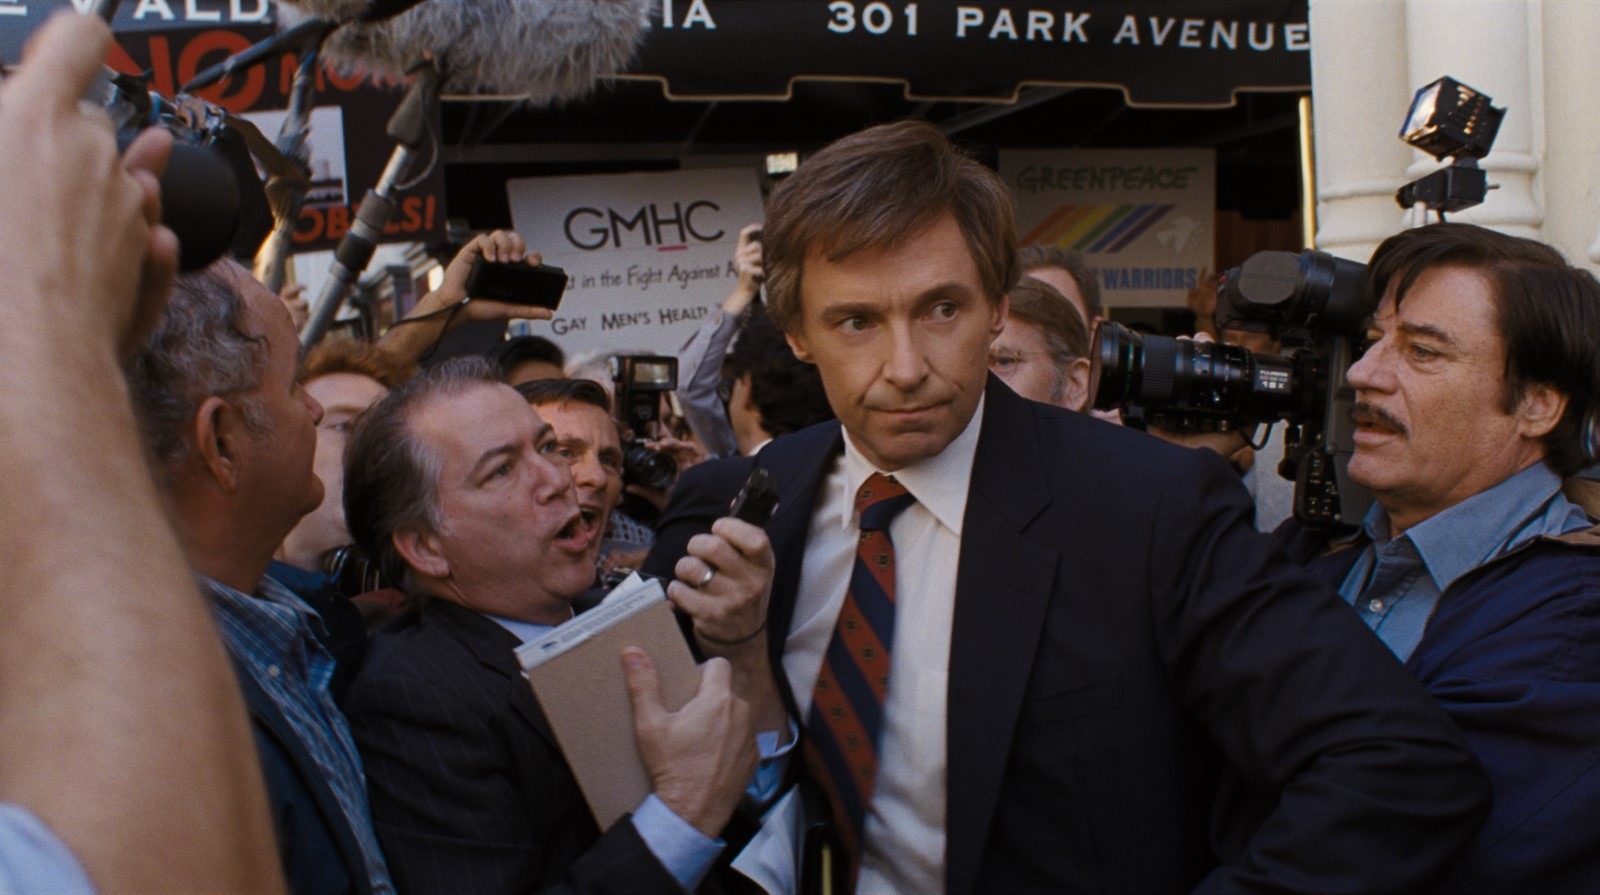 The Front Runner, Movie Reviews, Lucas Mirabella